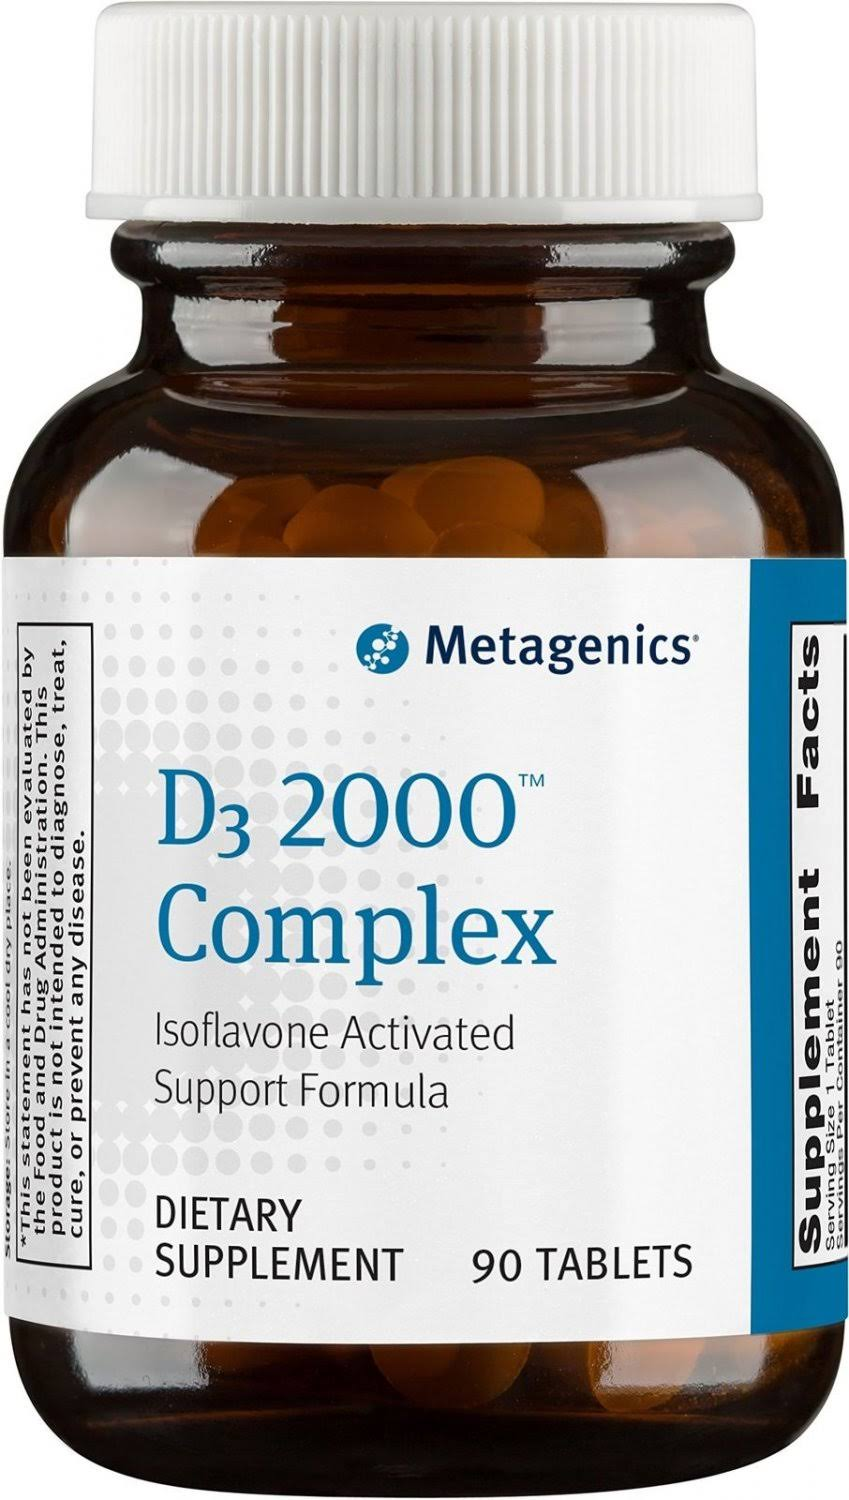 Metagenics D3 2000 Complex - 90 Tablets